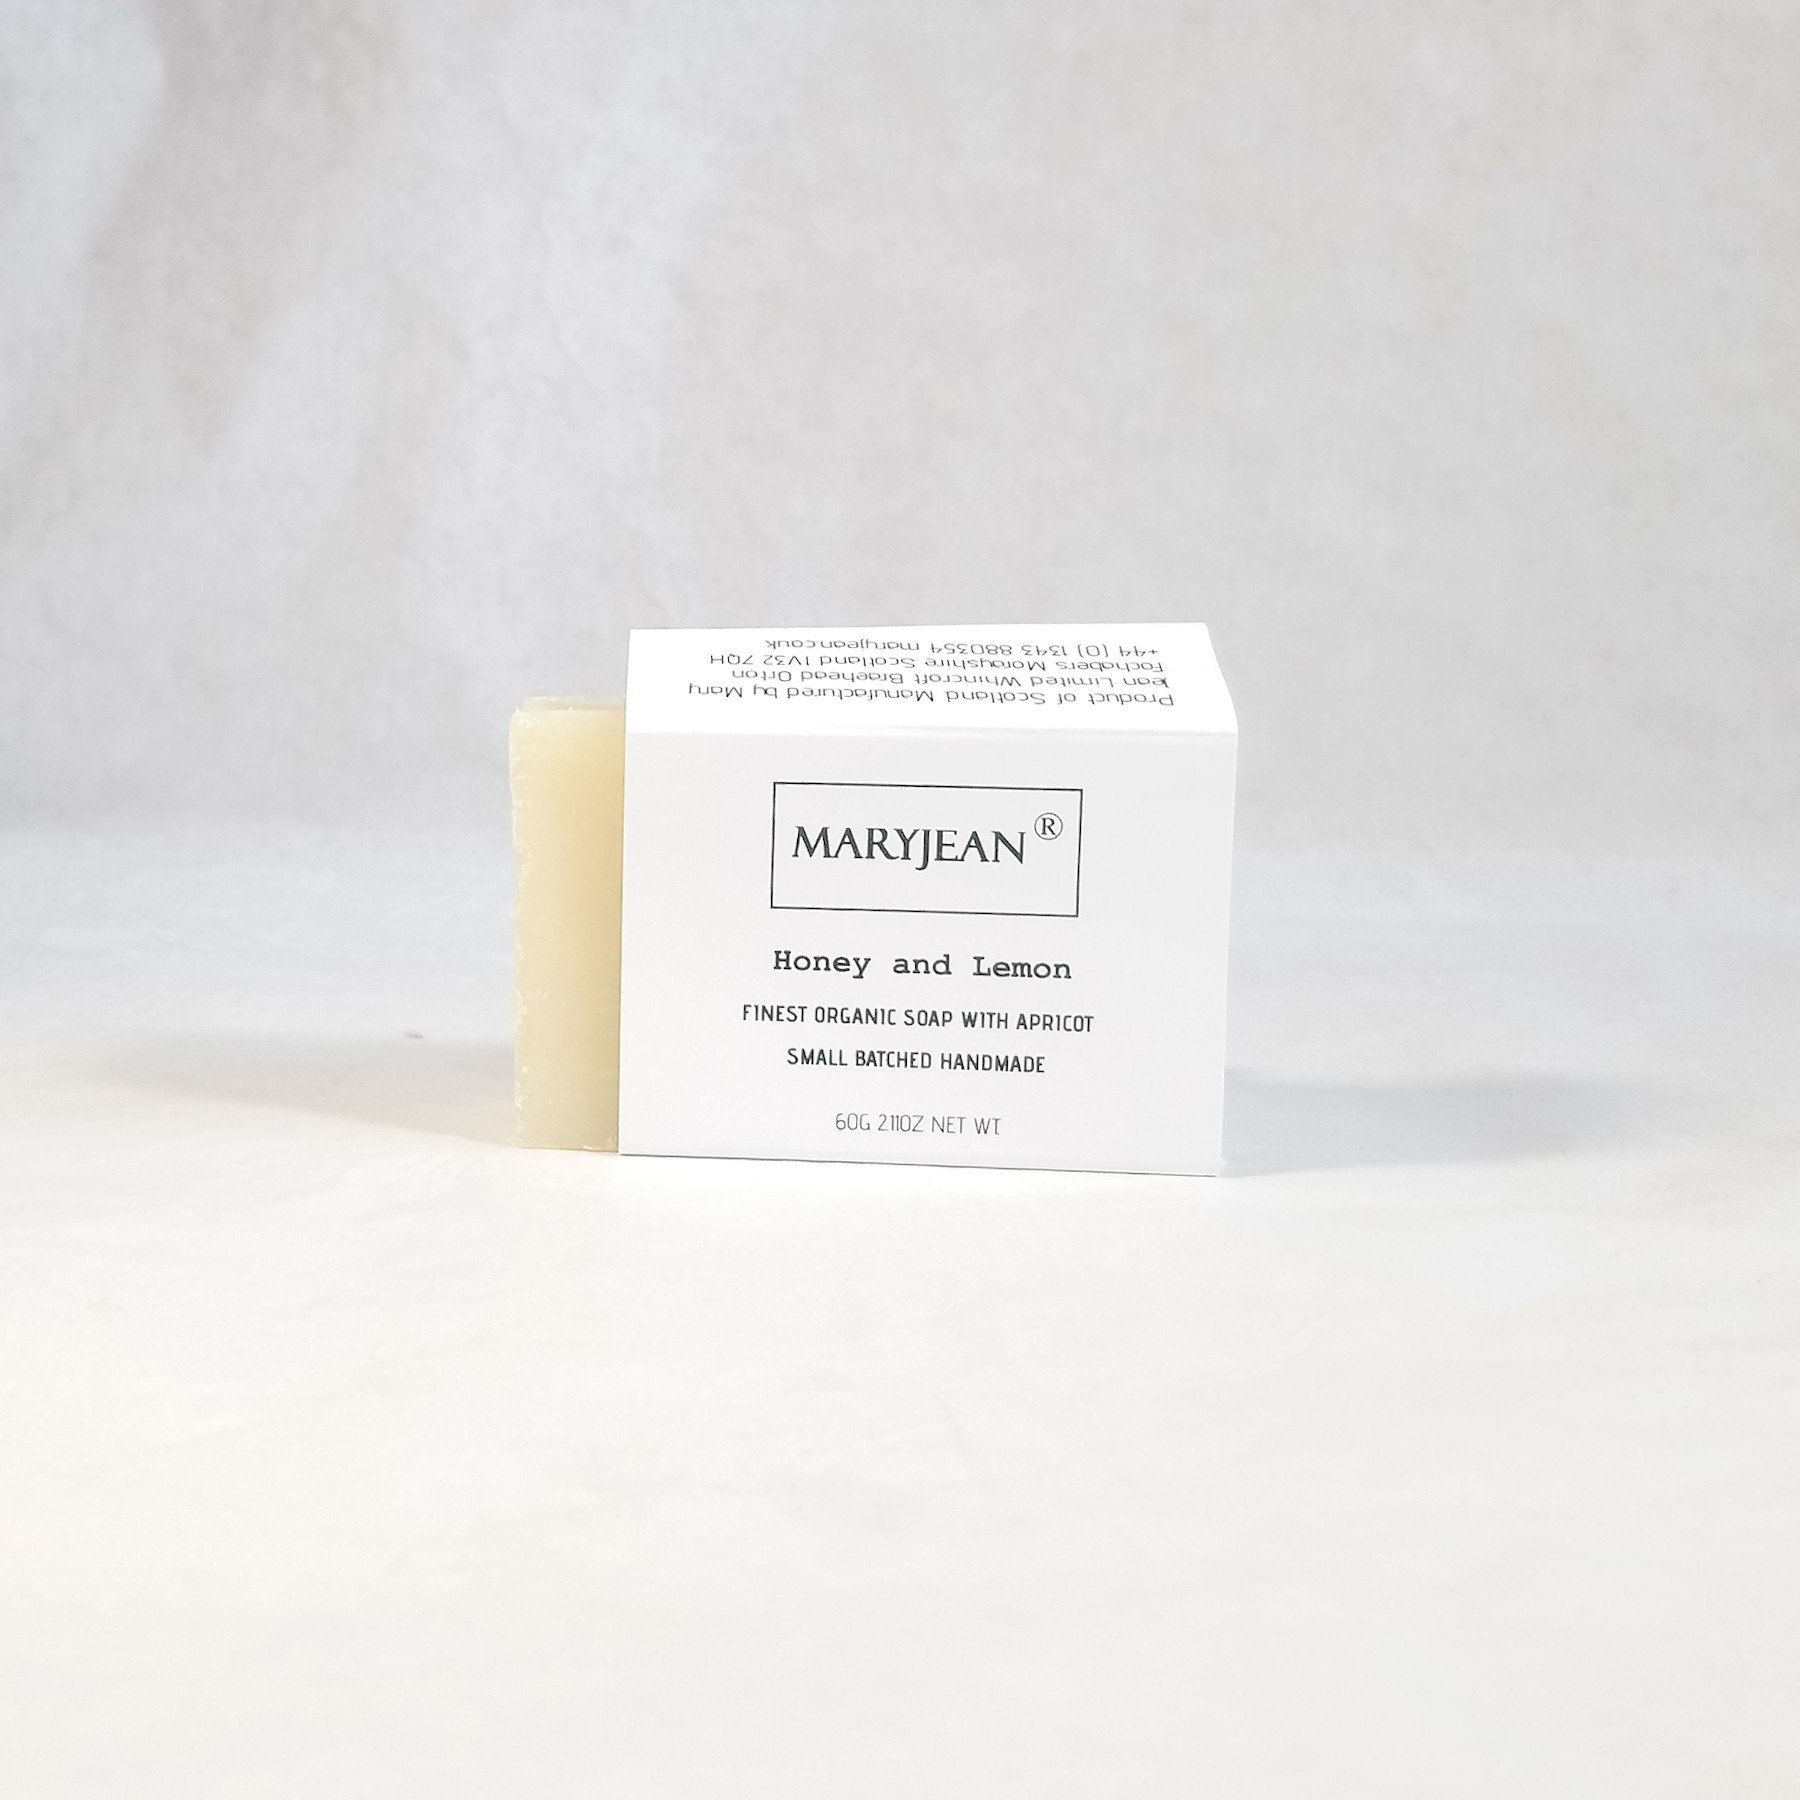 Travel size Organic Scottish Honey Lemon Soap Handmade with Apricot A quality zesty Lemon bar of soap with Honey and Apricot for dry mature skin types moisturised with Cocoa seed butter resulting in maximum hydration all day protection